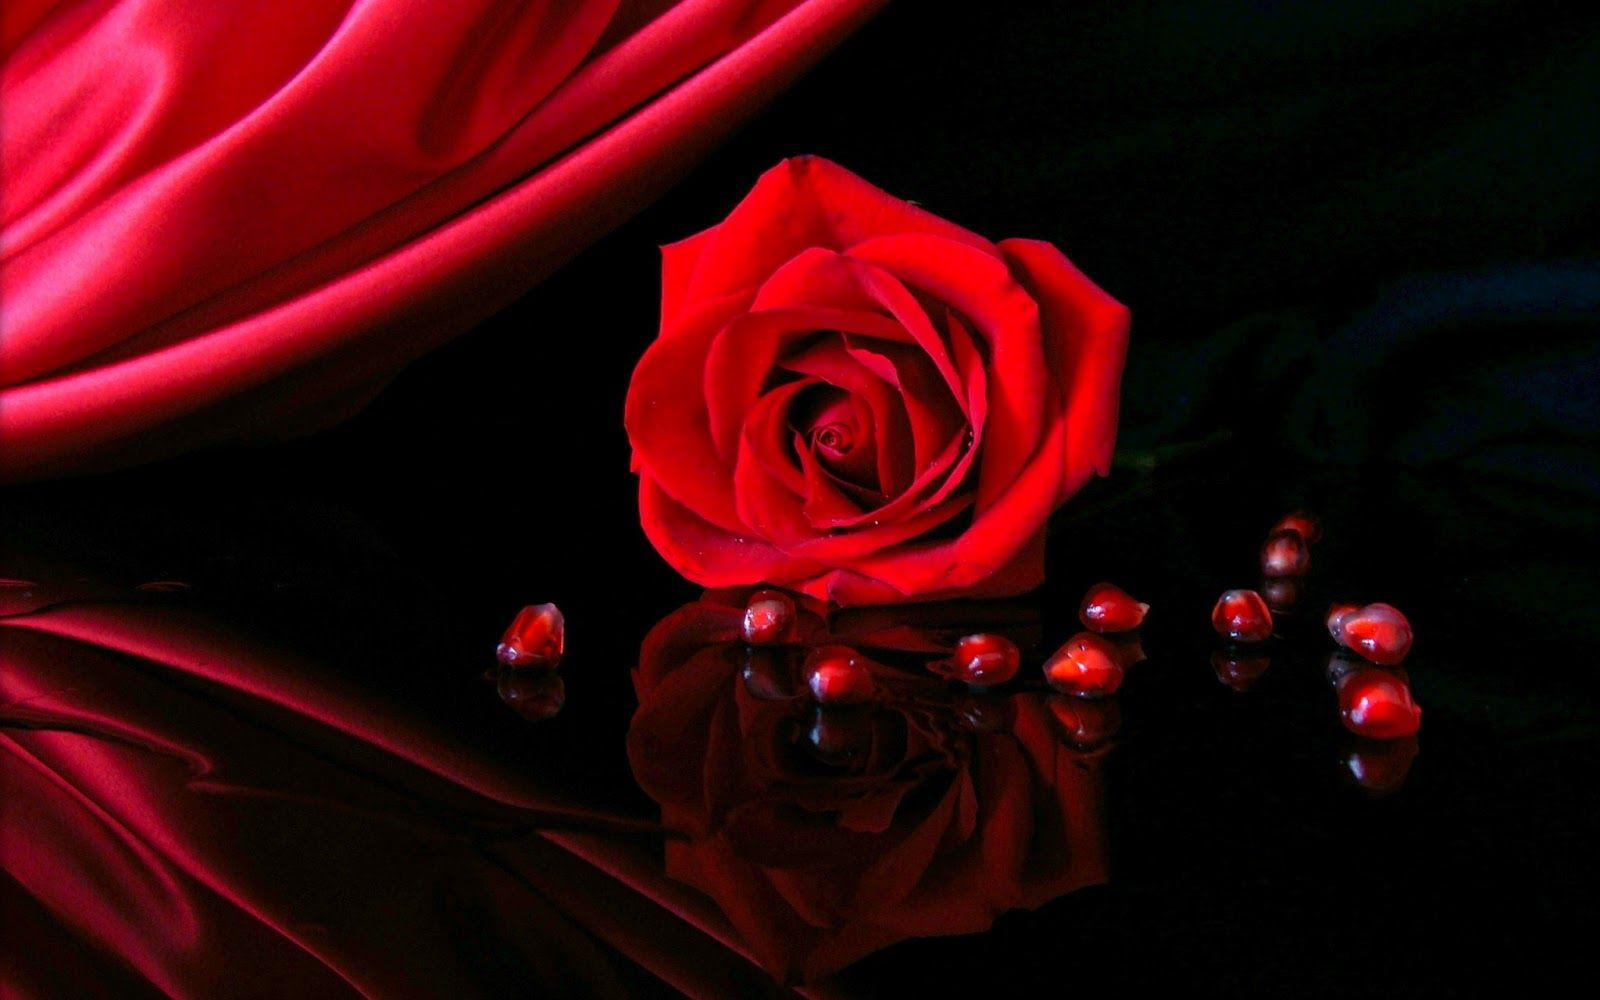 Rose Wallpapers HD Rose images Rose Flower Pictures and